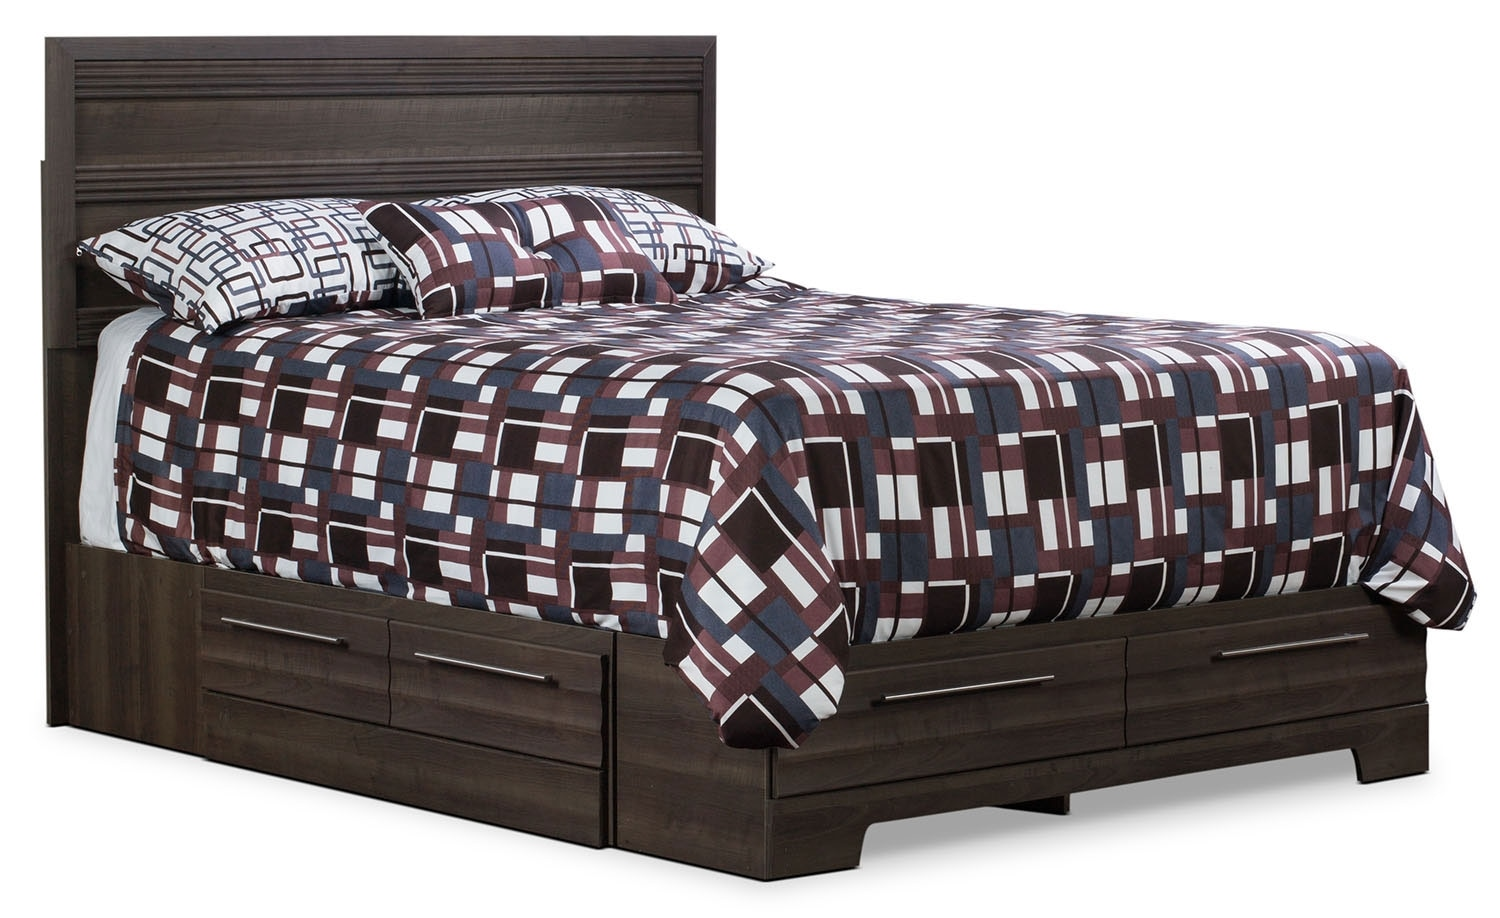 Bedding For Full Size Beds Bed Mattress Sale